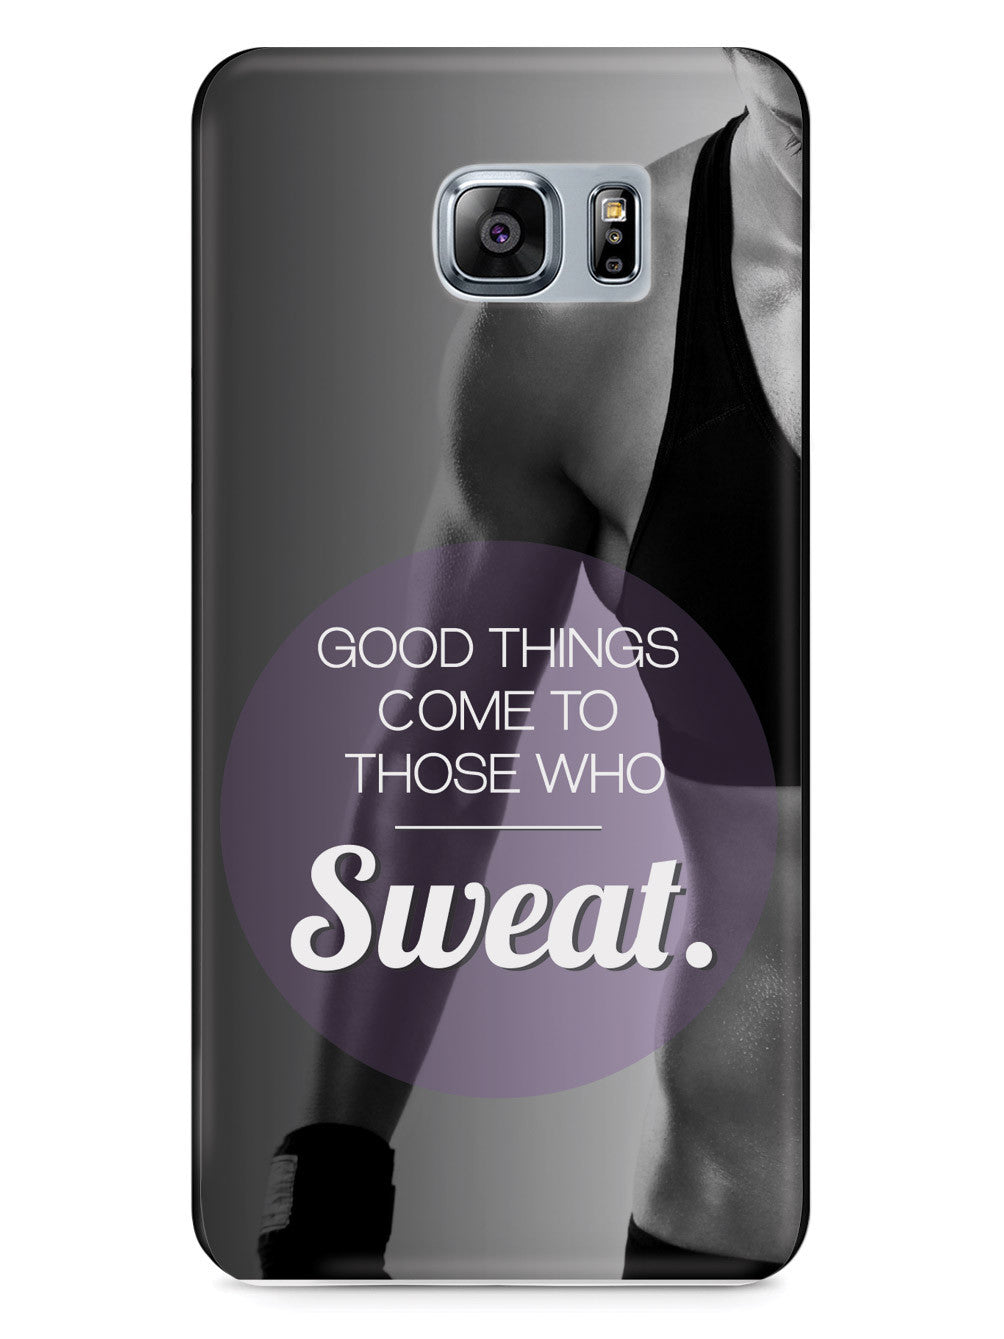 Those Who Sweat - Fitness Case